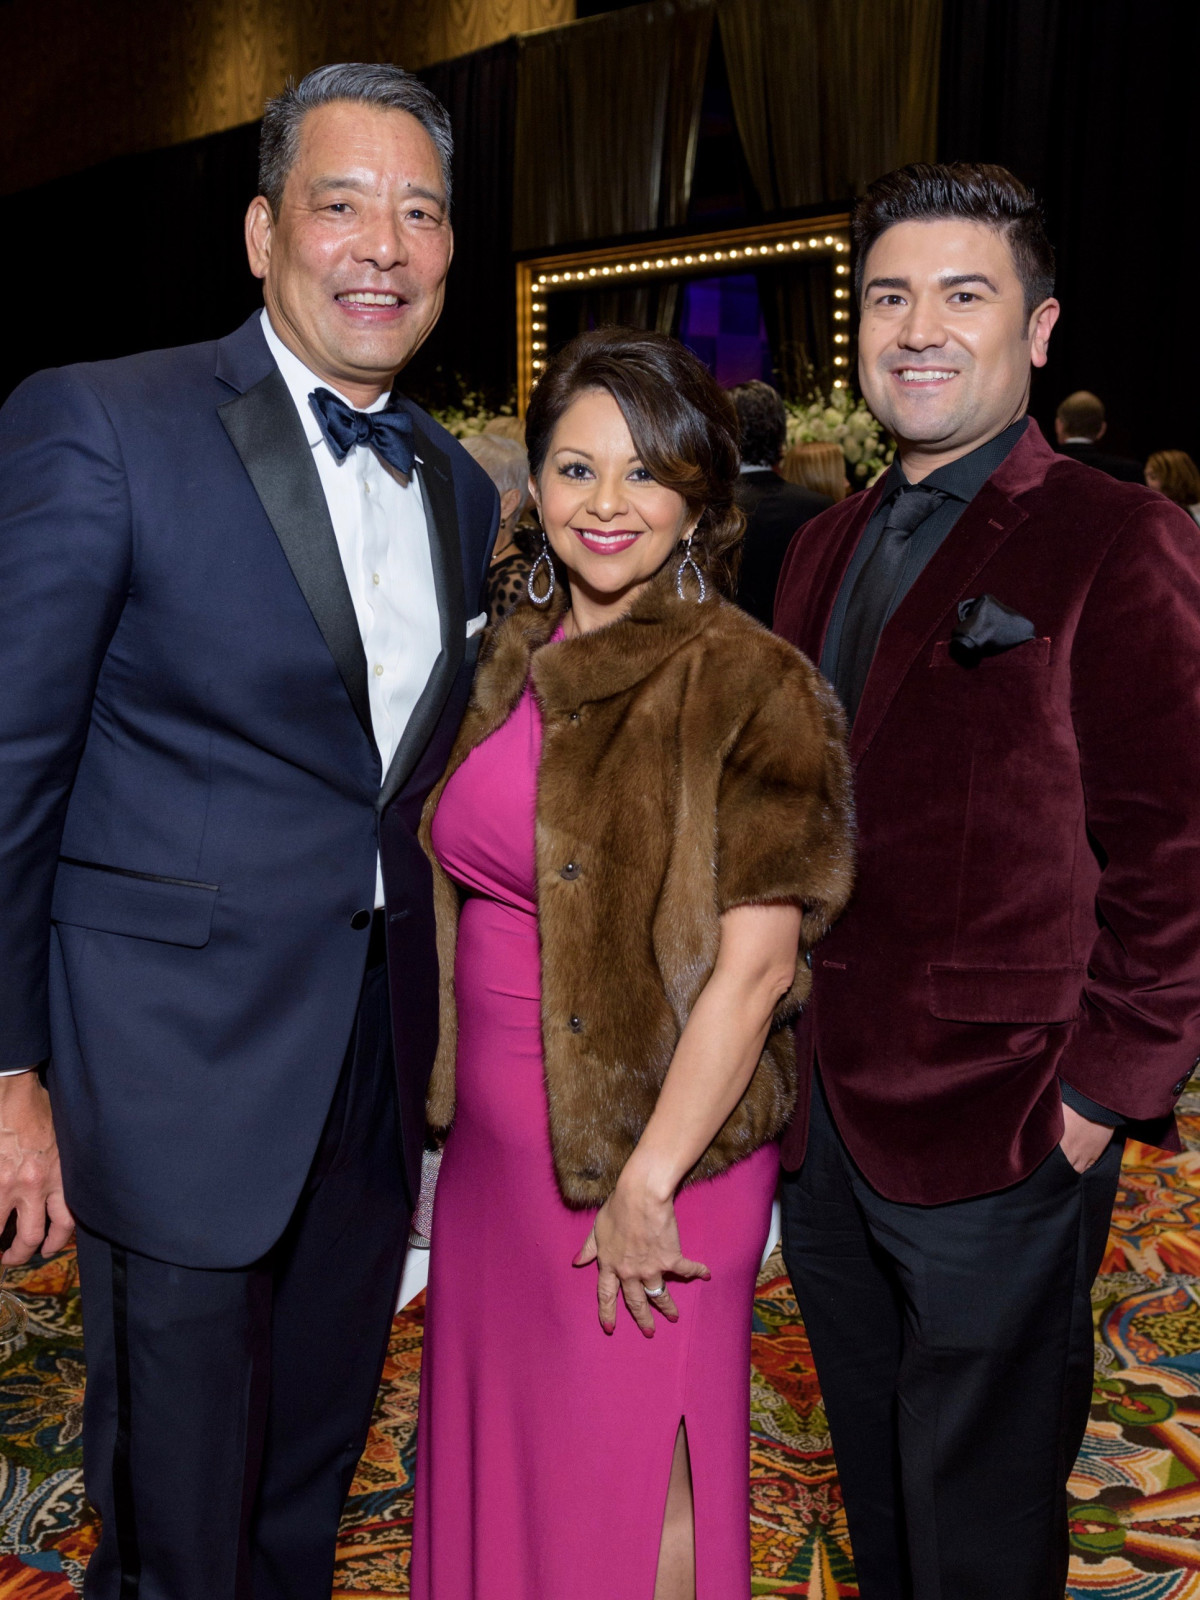 Frank Tsuru, Grace Florez, Erik Borrego Winter Ball